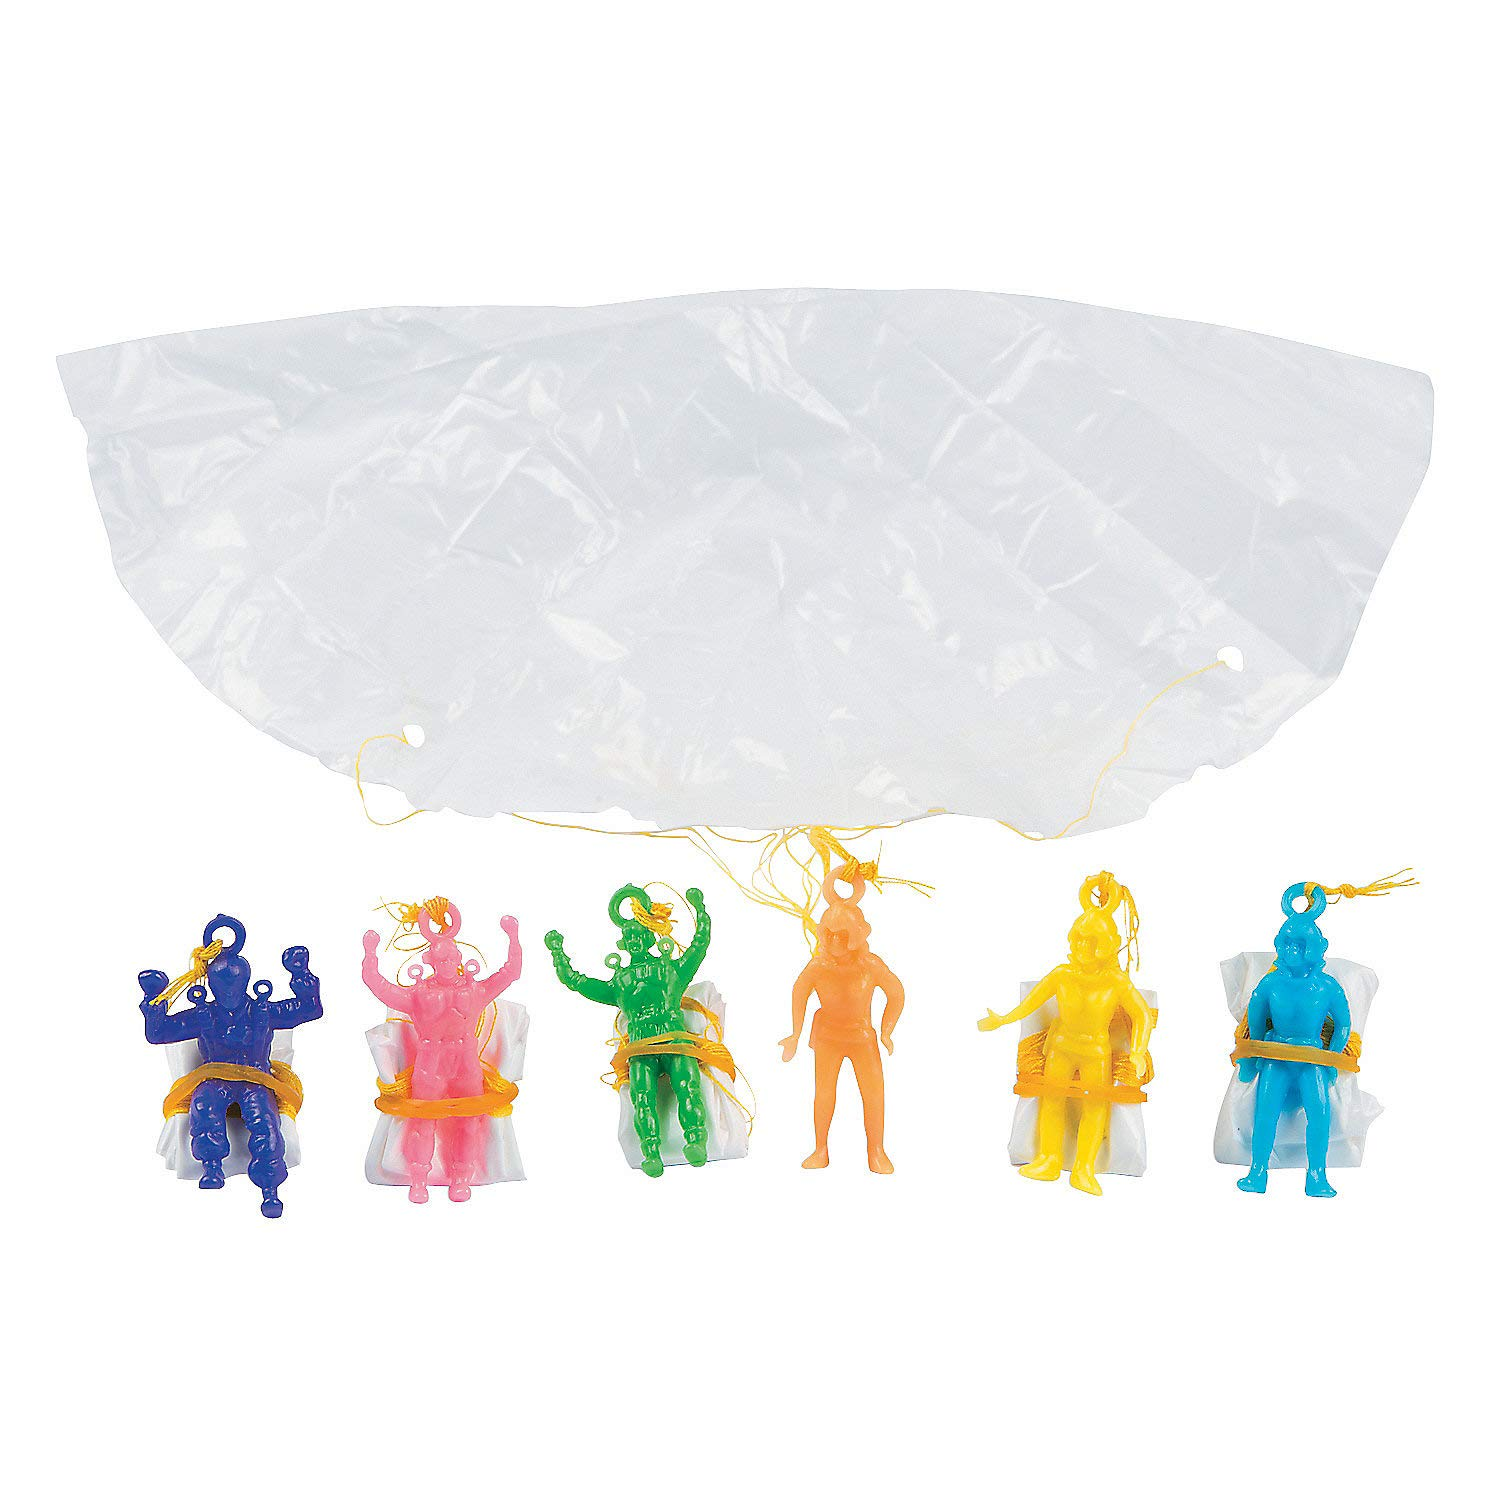 Fun Express - Mini Vinyl Paratroopers (6dz) - Toys - Character Toys - Wind Ups & Paratroopers - 72 Pieces by Fun Express